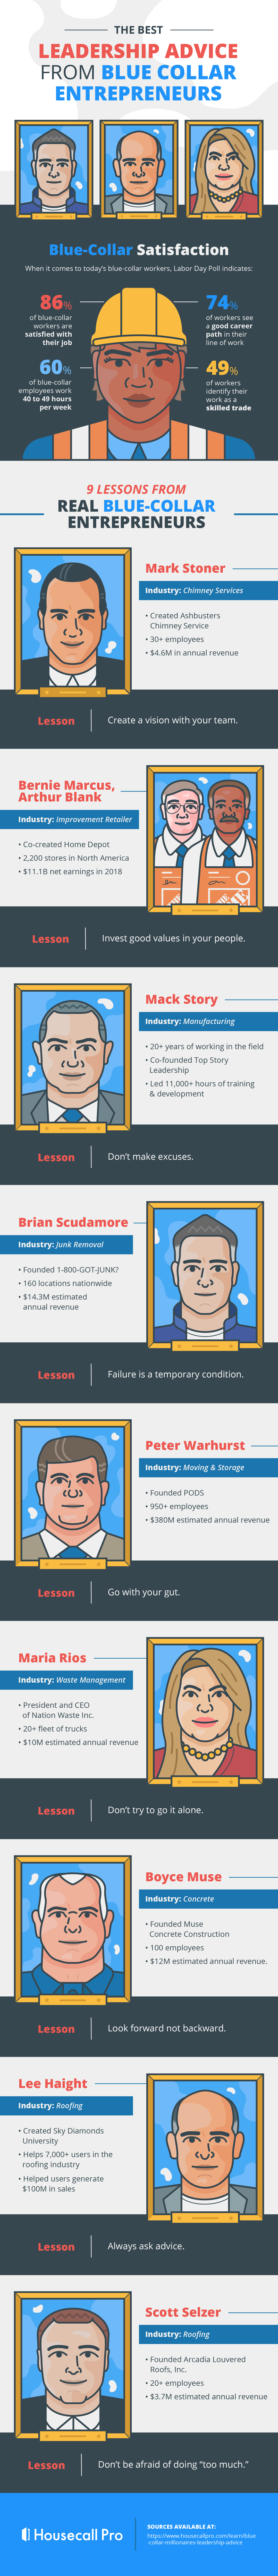 blue_collar_millionaires_advice_infographic